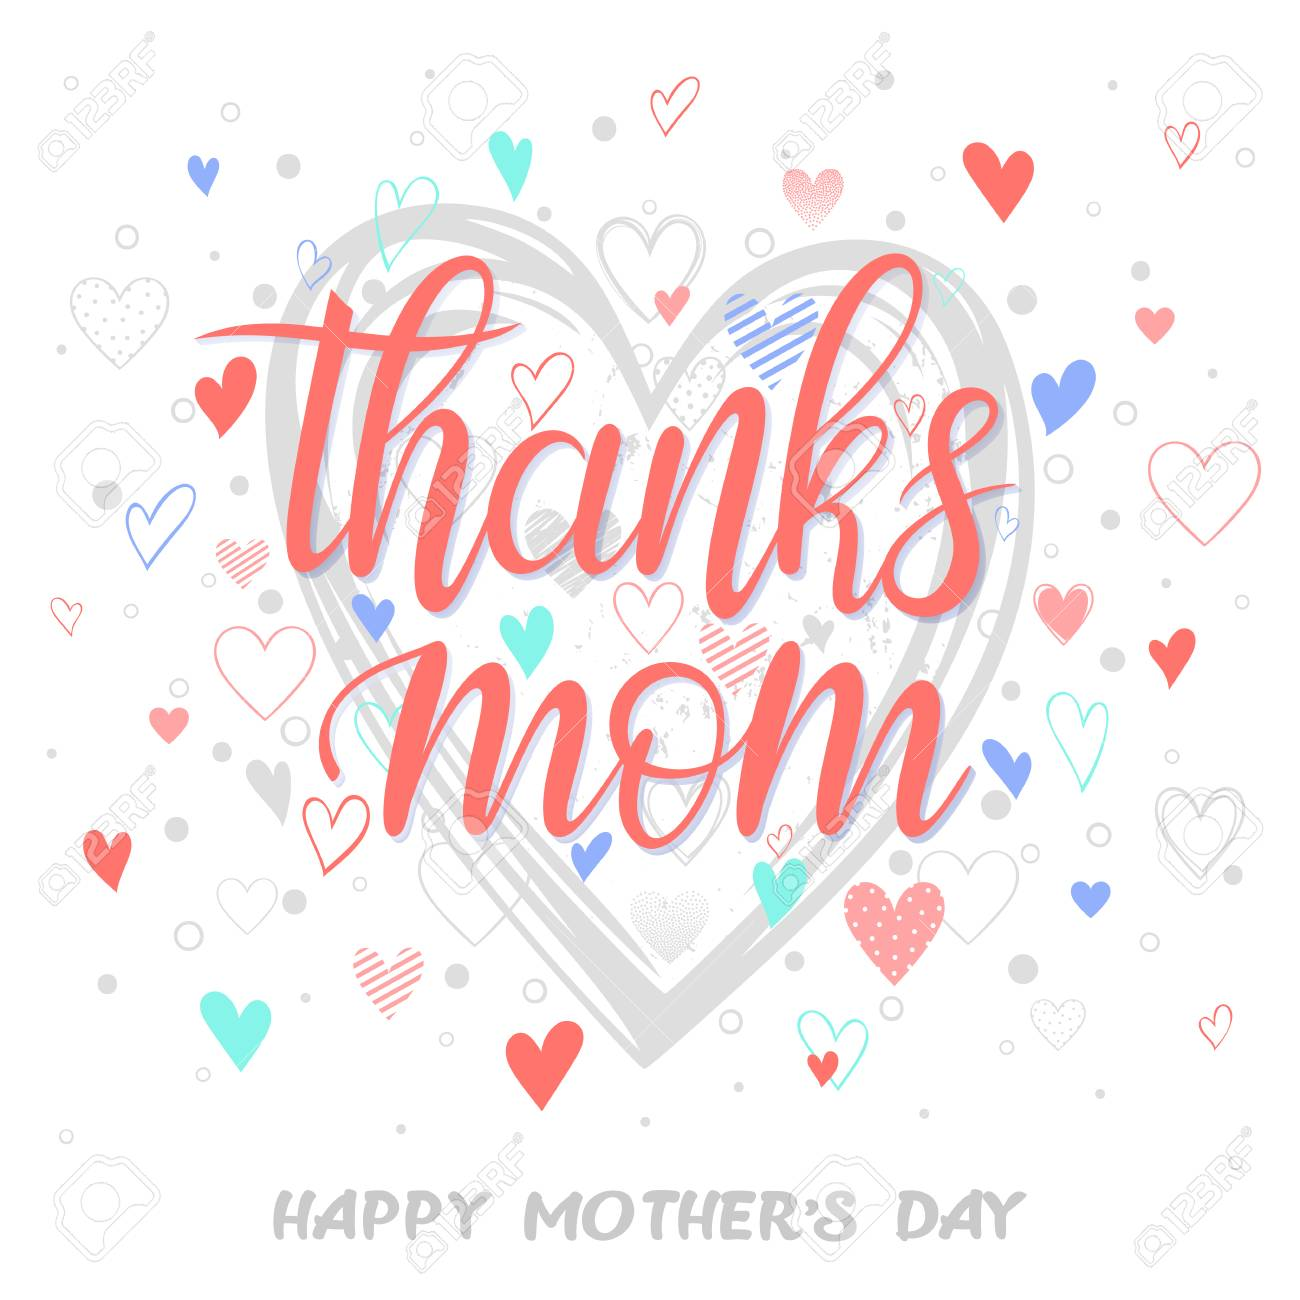 Happy mothers day typographyanks mom hand painted lettering happy mothers day typographyanks mom hand painted lettering with different heartseeting m4hsunfo